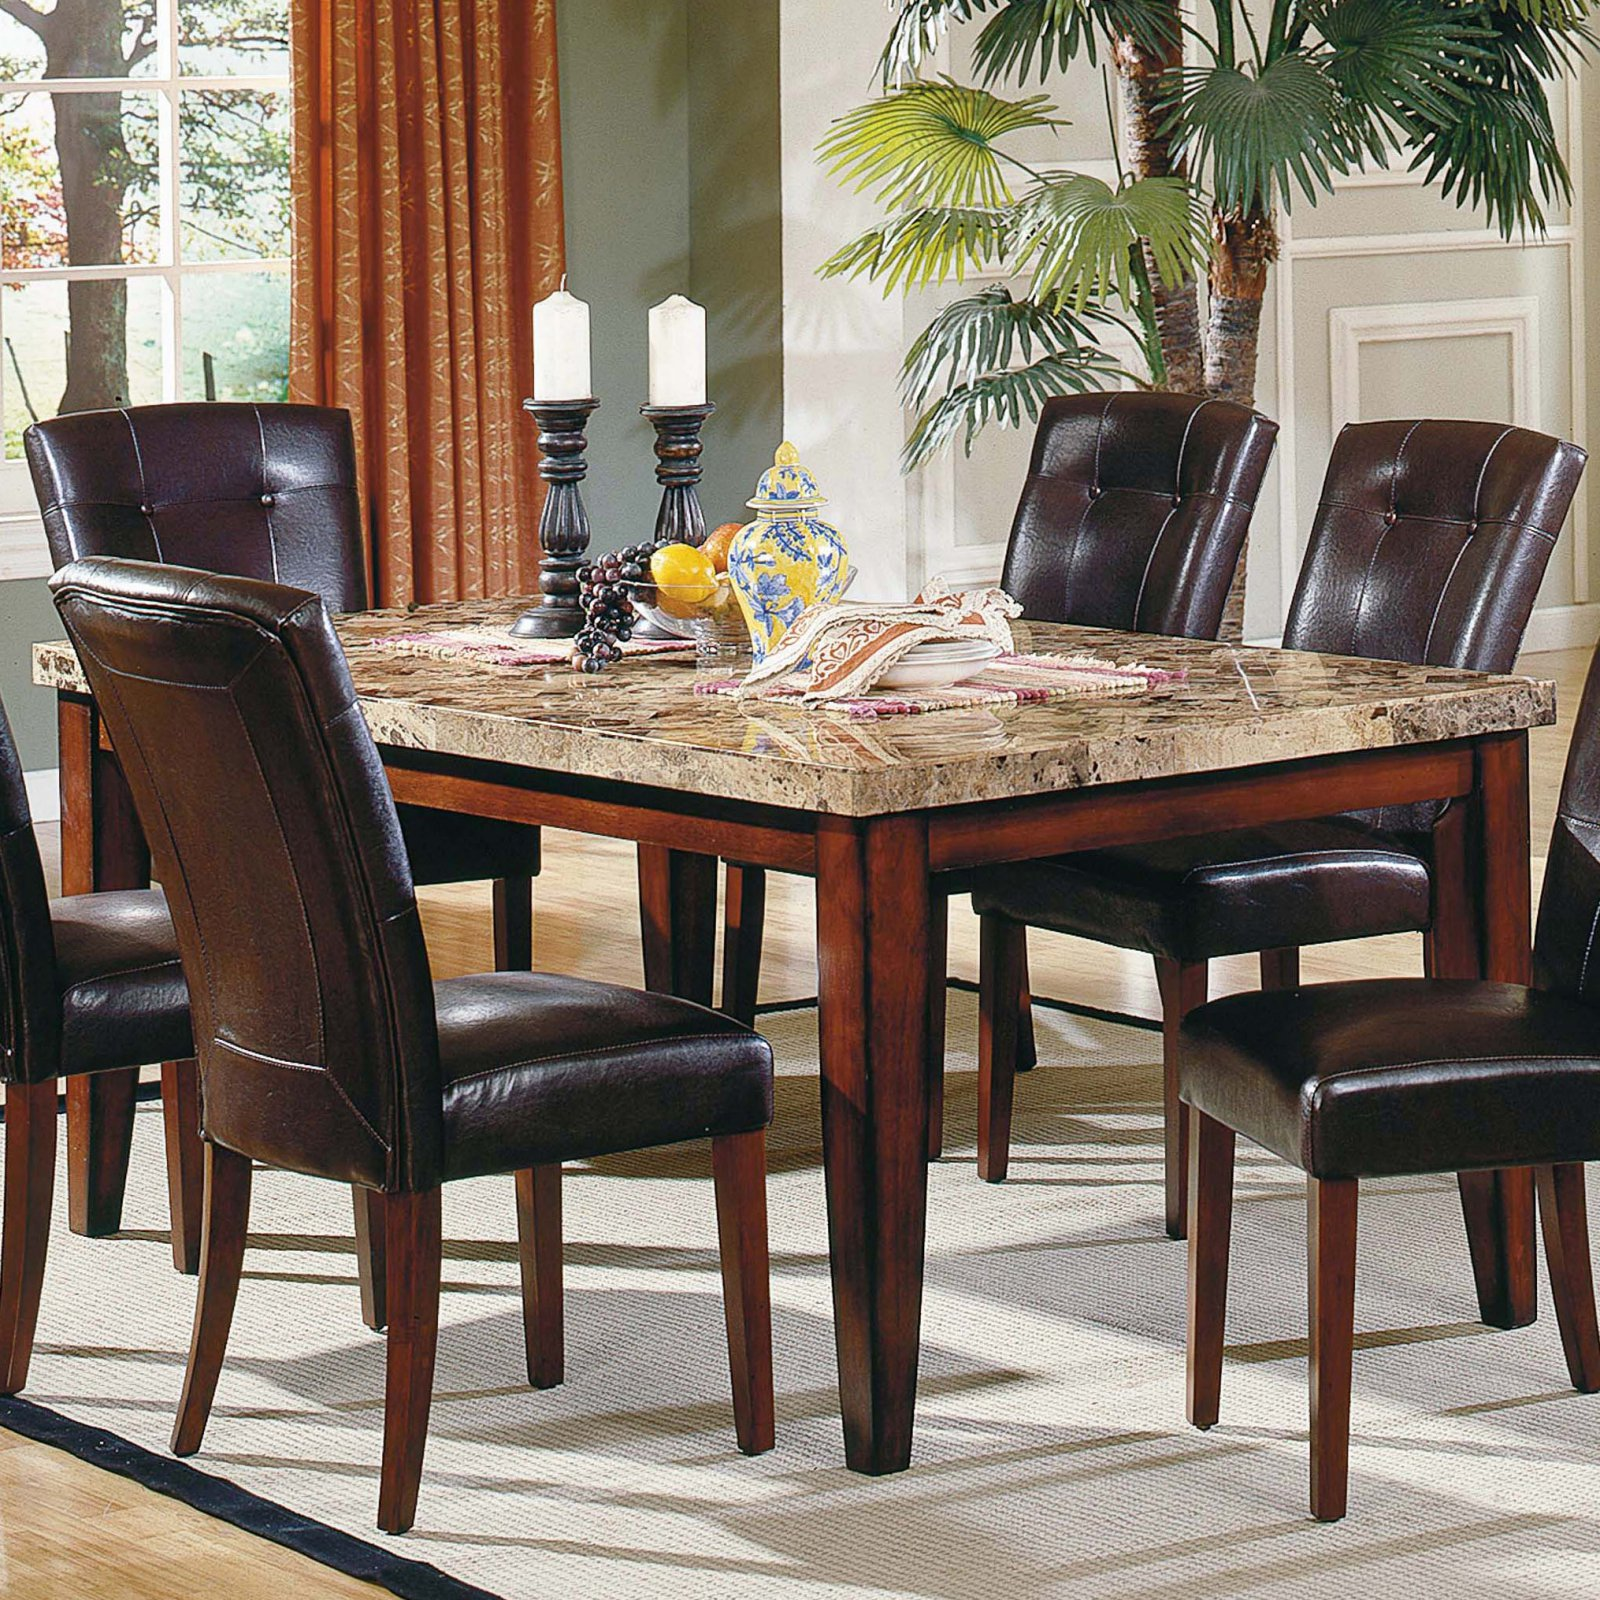 Steve Silver Montibello 5-Piece Marble Top Rectangular Dining Table Set